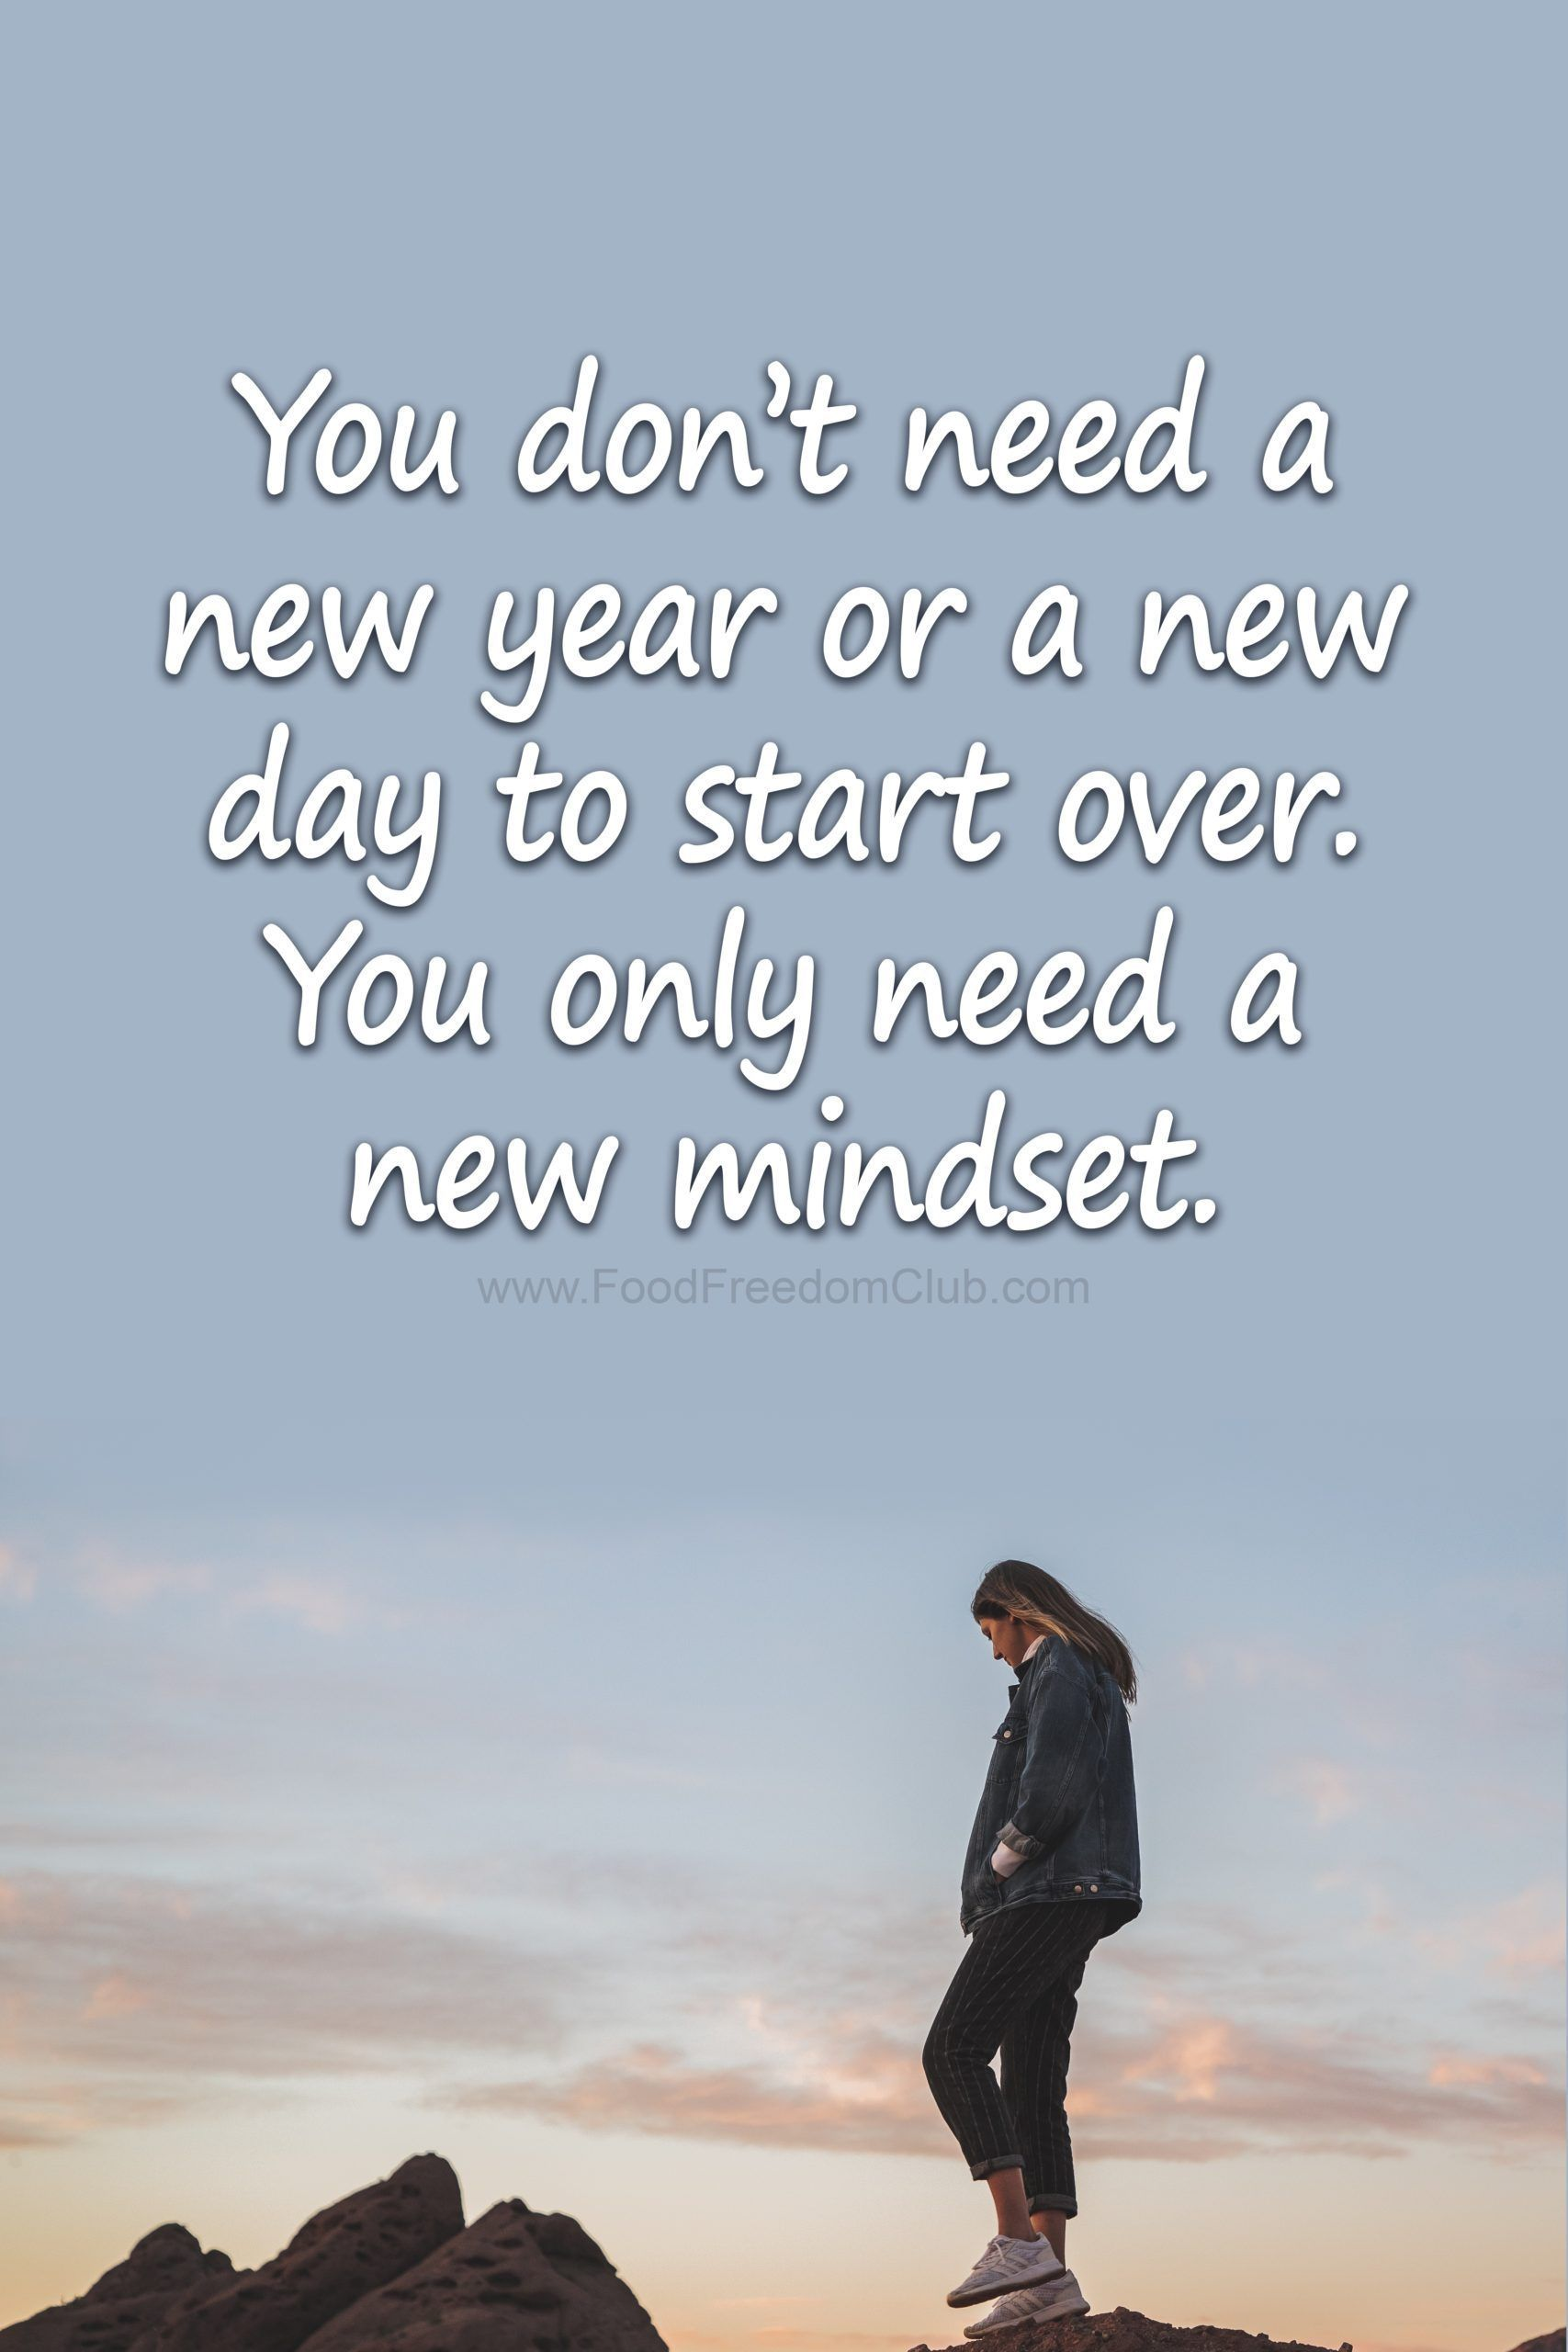 You don't need a new year or a new day to start over. You